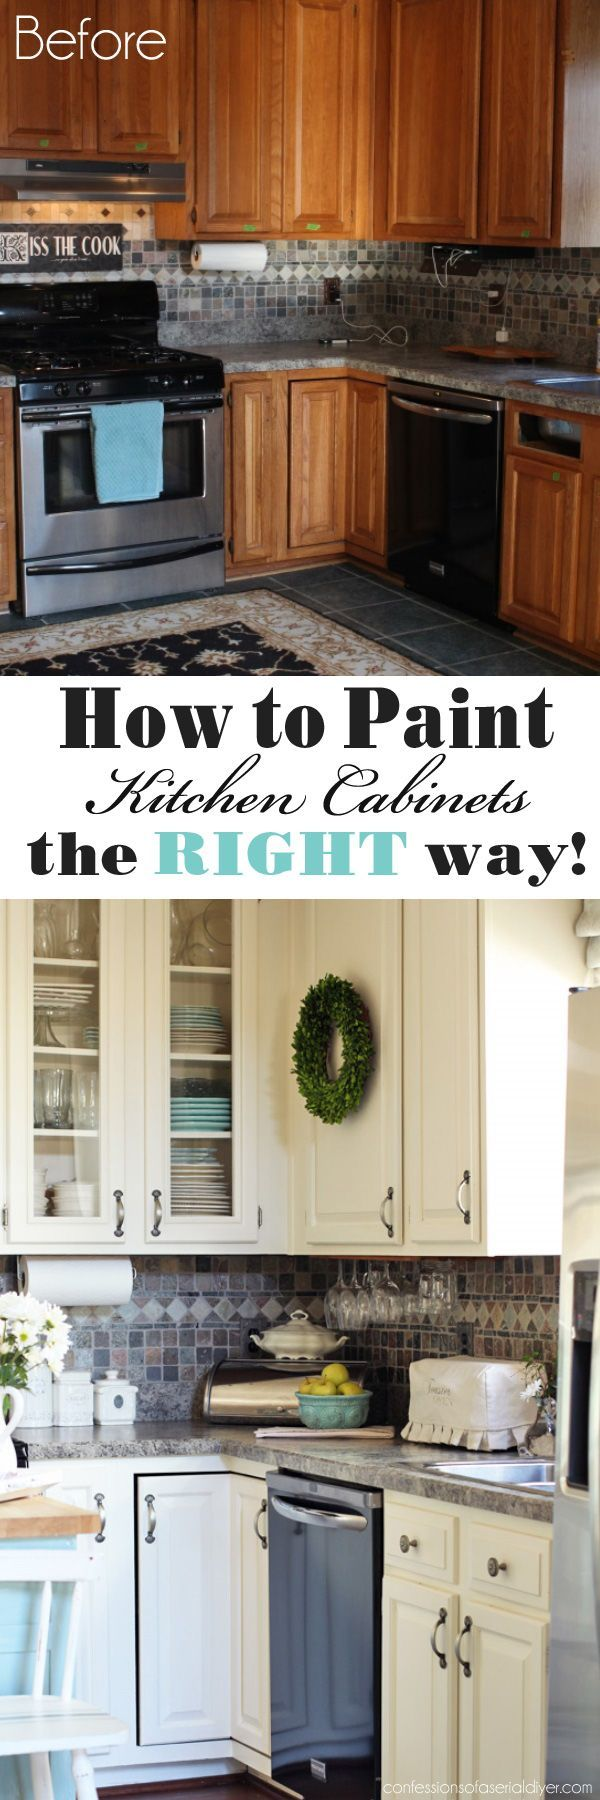 B82944 kitchen cabinets diy kitchens - How To Paint Kitchen Cabinets The Right Way From Confessions Of A Serial Do It